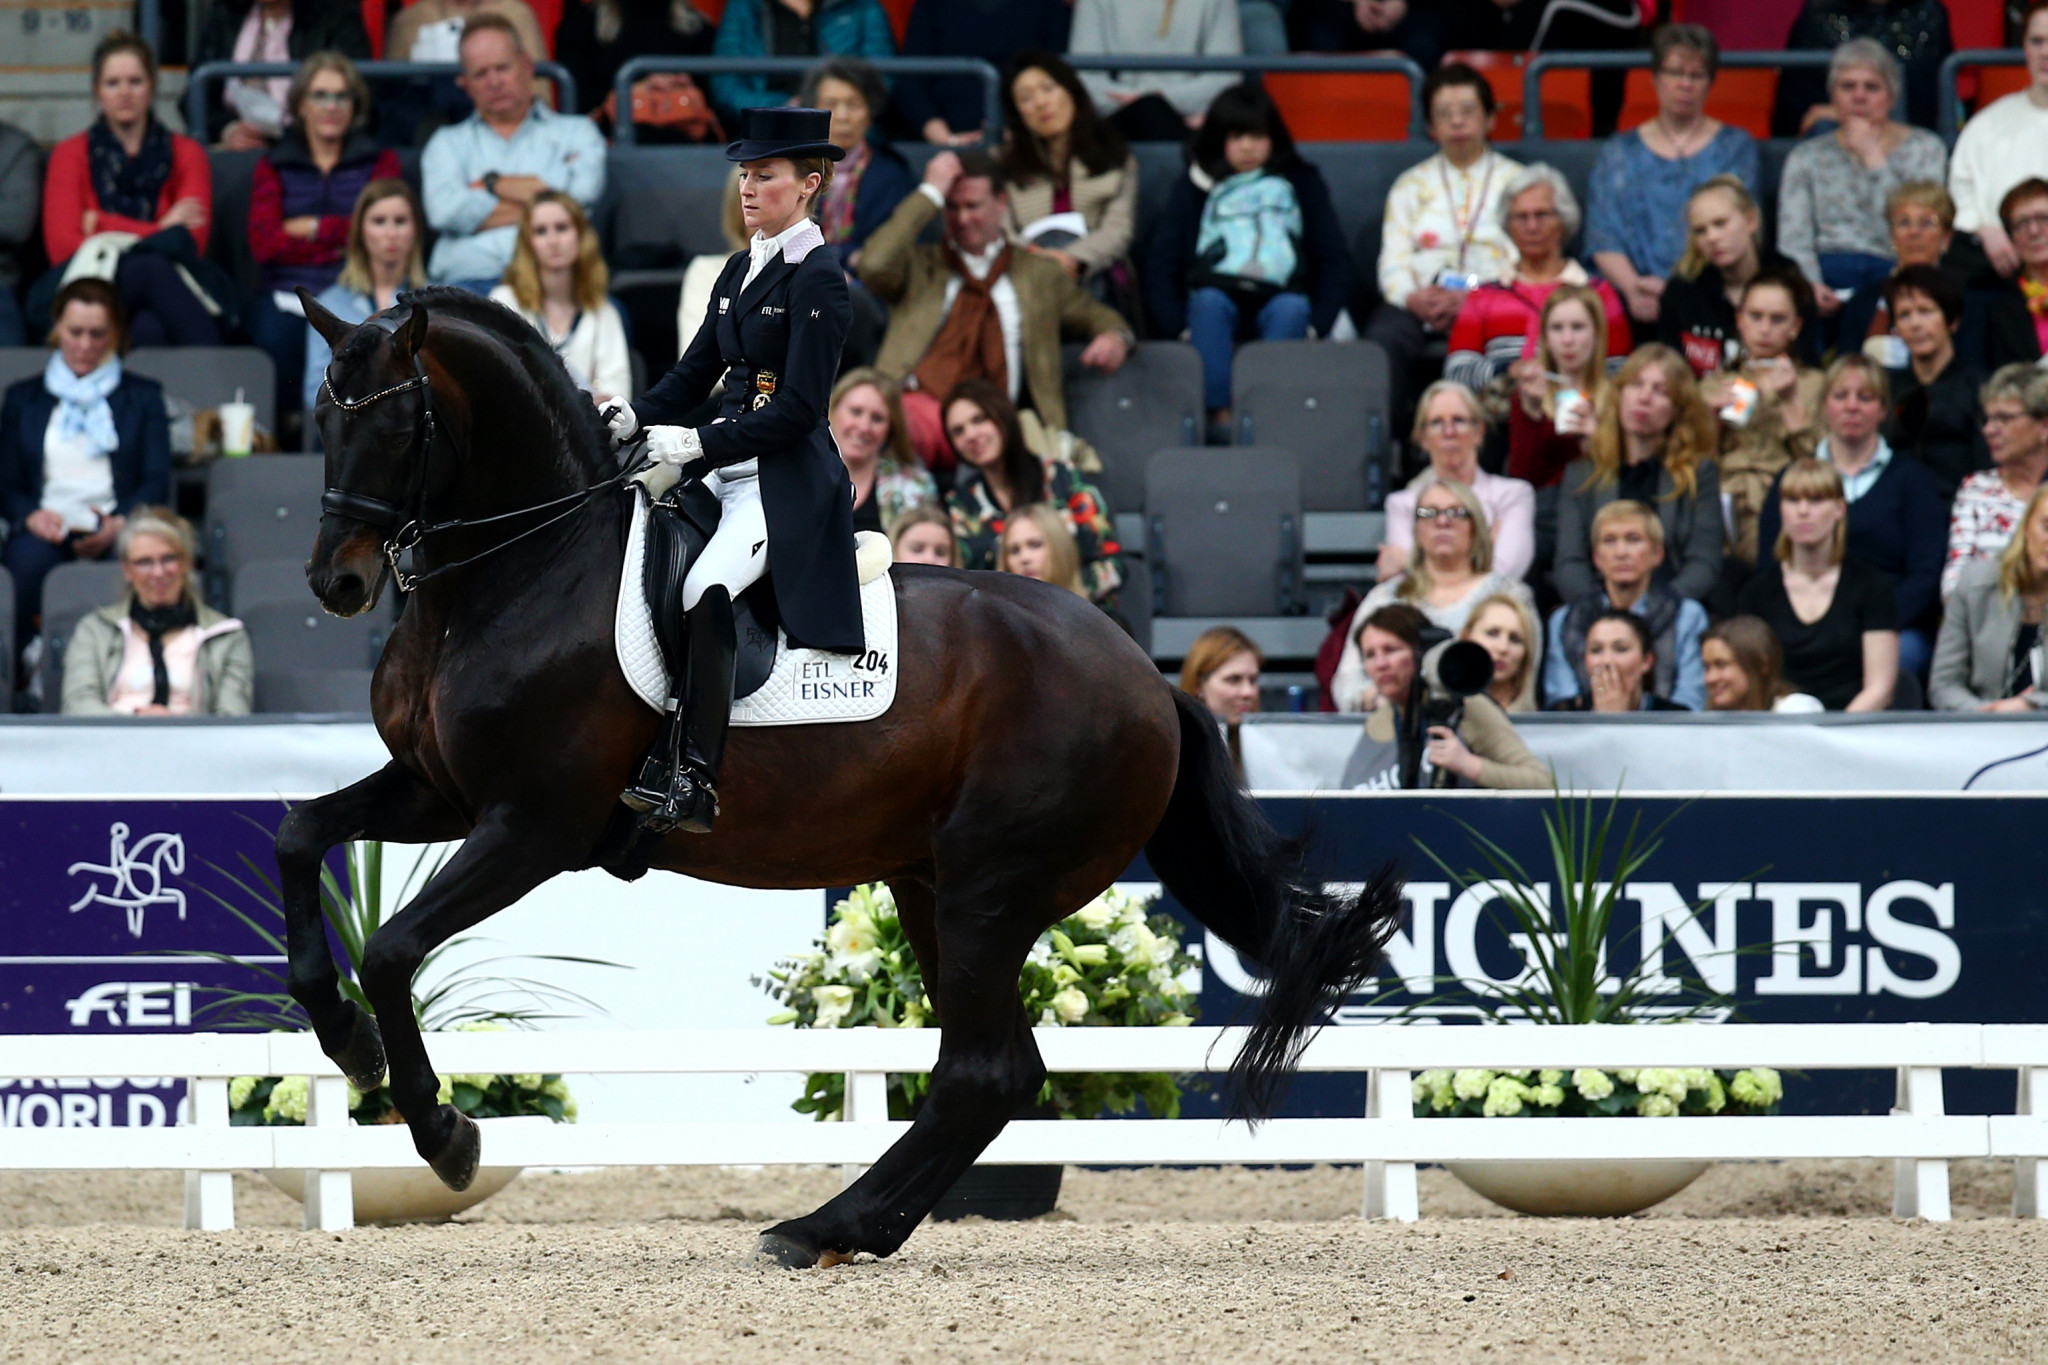 FEI Dressage Calendar Task Force agrees proposals in virtual meeting